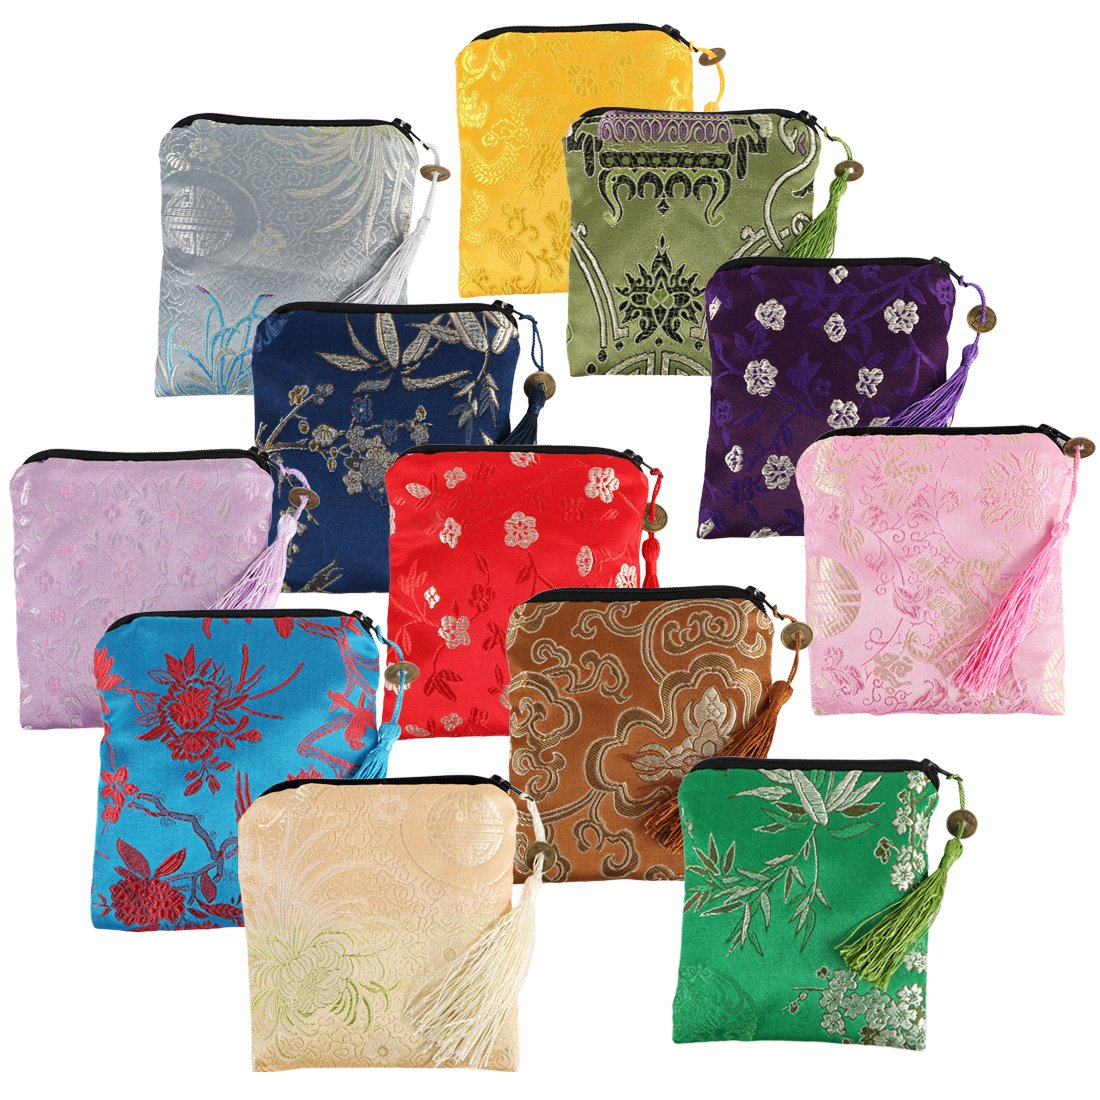 kilofly 12pc Silk Brocade Tasseled Coin Purse Zipper Jewelry Pouch Bag Value Set